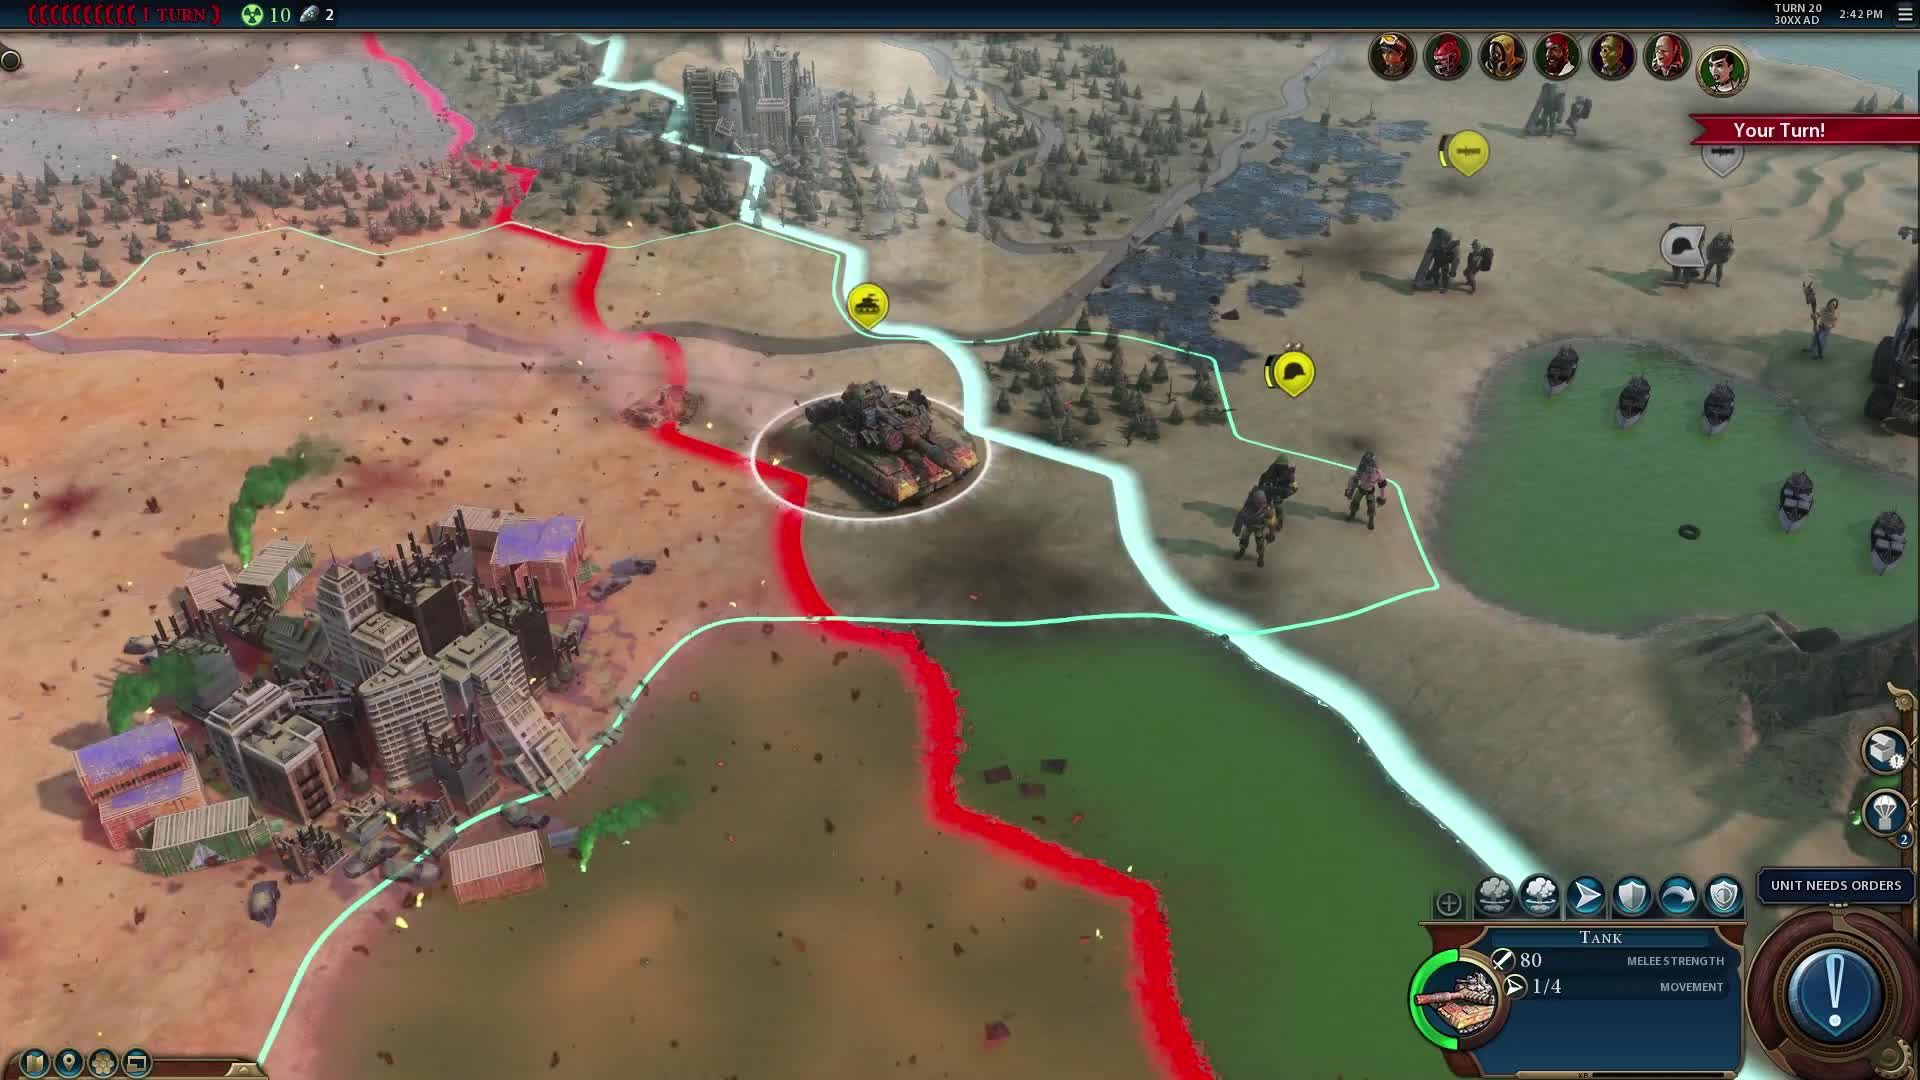 Civilization 6 September Update - Red Battle Royale ... on dota 2 custom map, civilization 5 europe map, minecraft custom map, skyrim custom map, league of legends custom map, portal 2 custom map, sims 3 custom map,